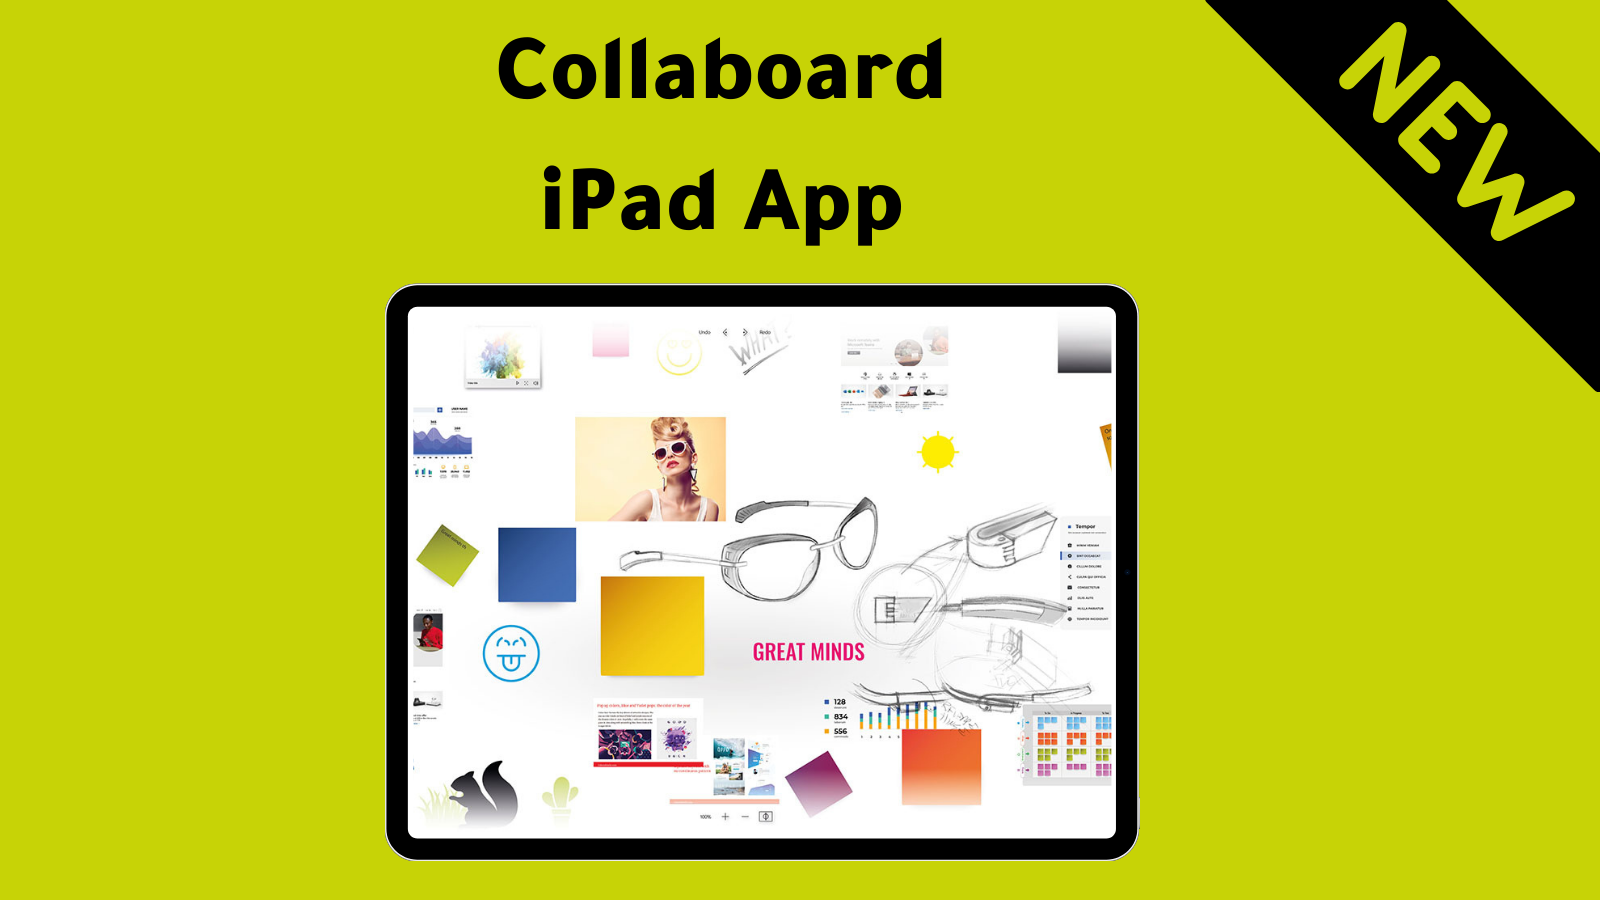 iPad App from Collaboard for interactive and creative work